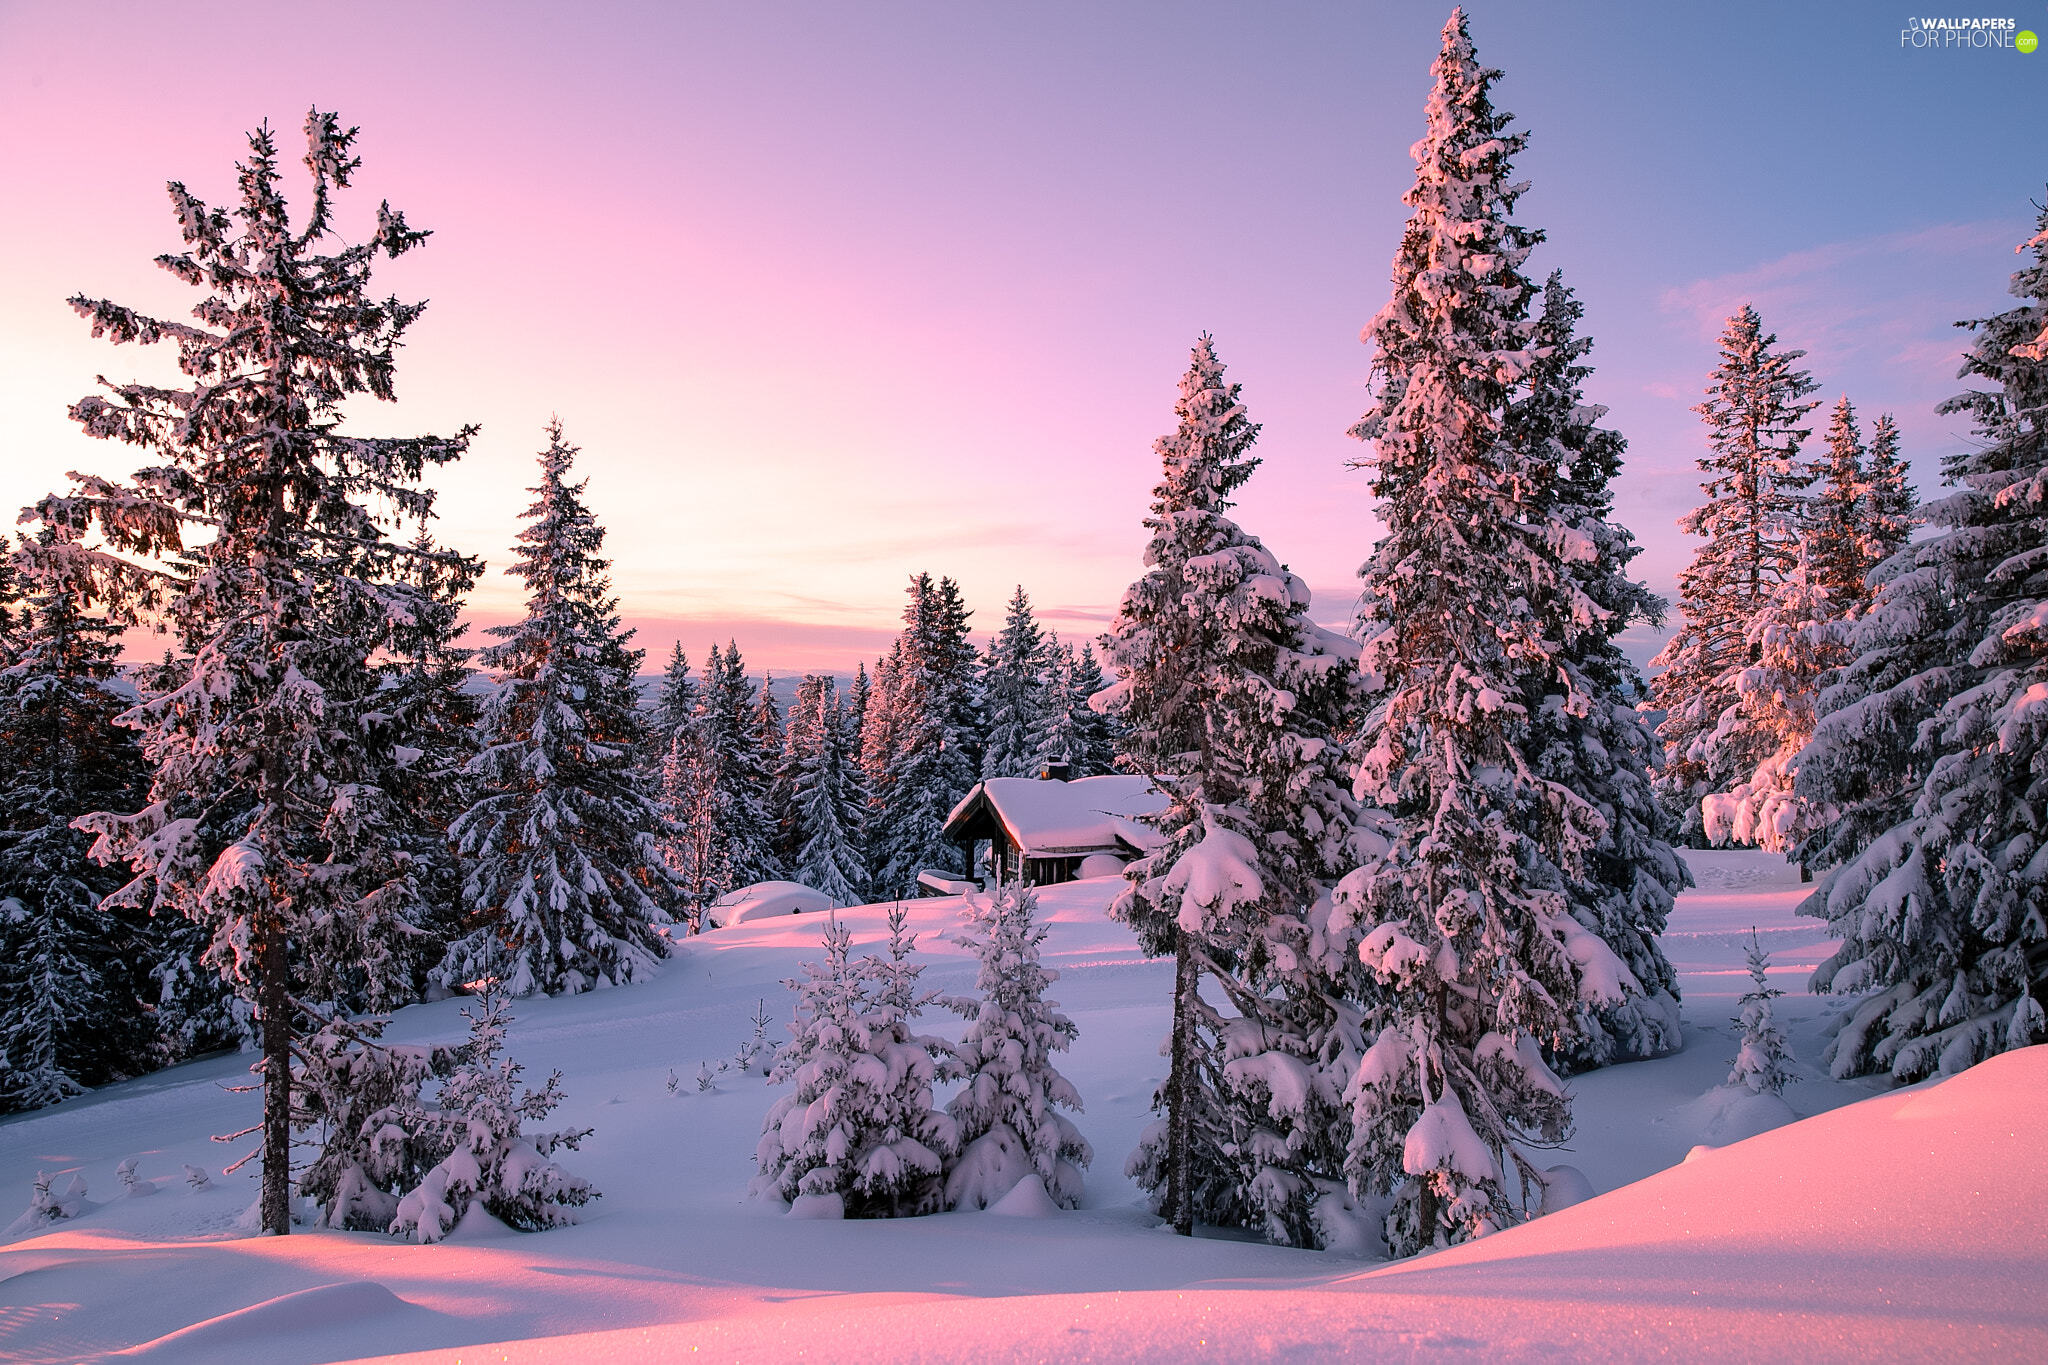 trees, viewes, winter, forest, Sunrise, Snowy, house, Mountains